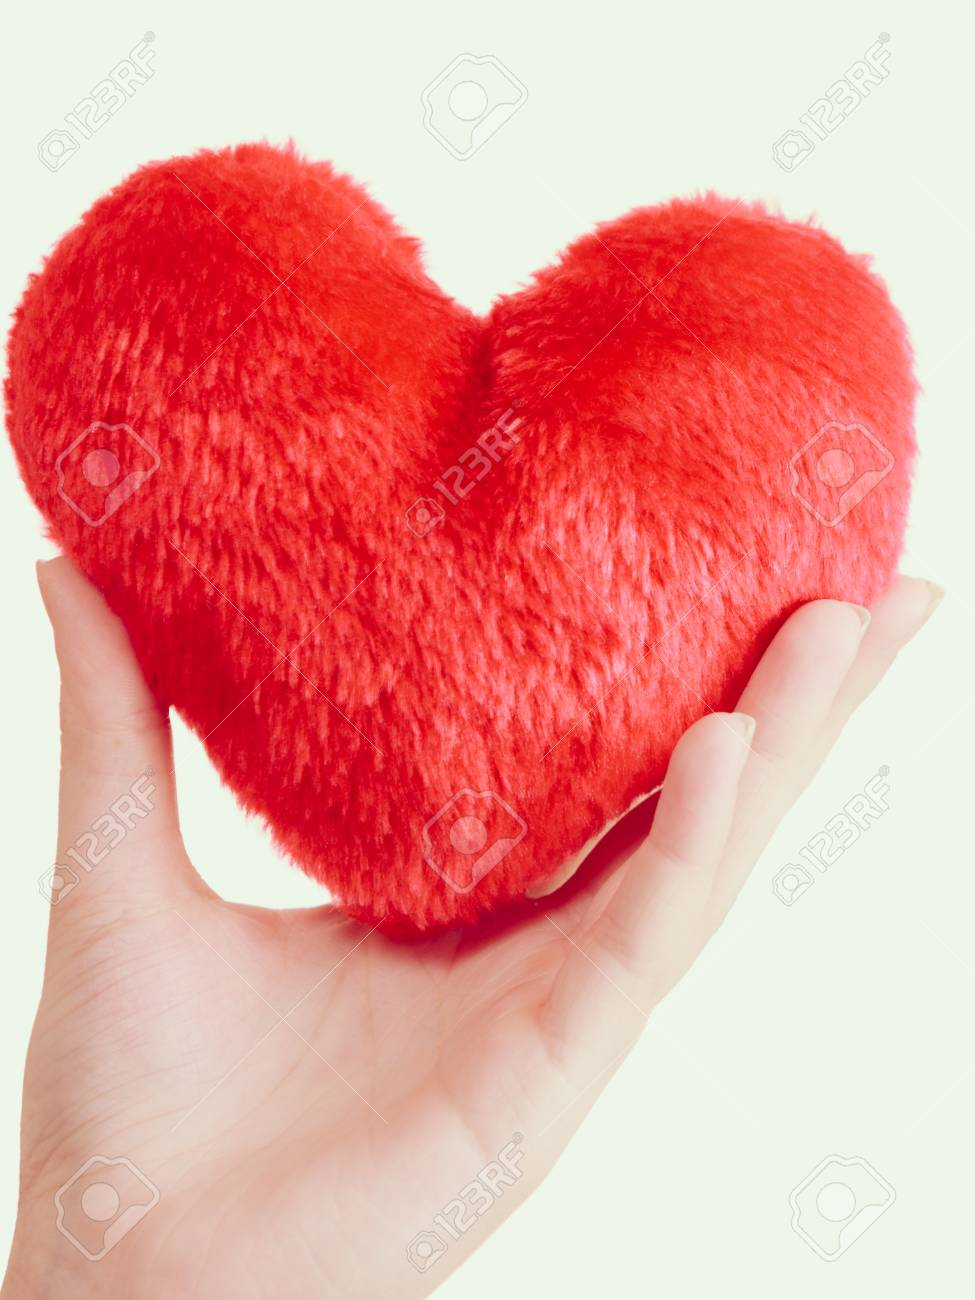 woman hand holding small romantic red heart shaped pillow perfect